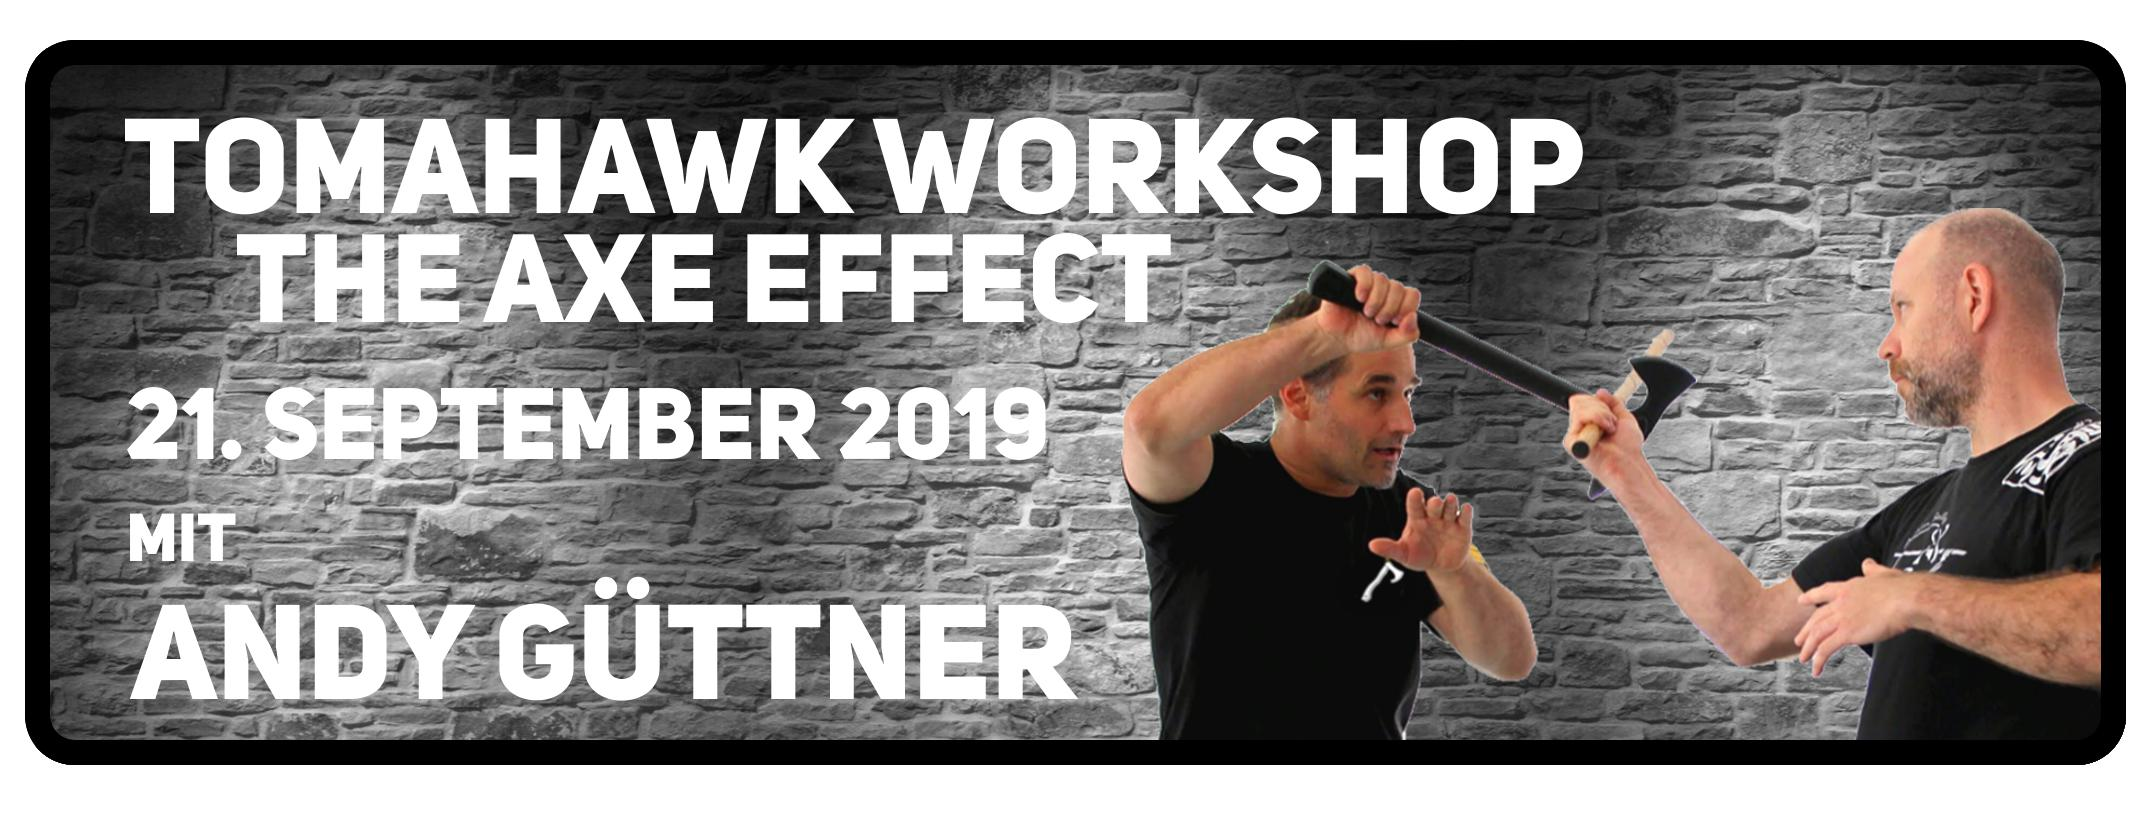 Tomahawk_Workshop_The Axe Effect_092019